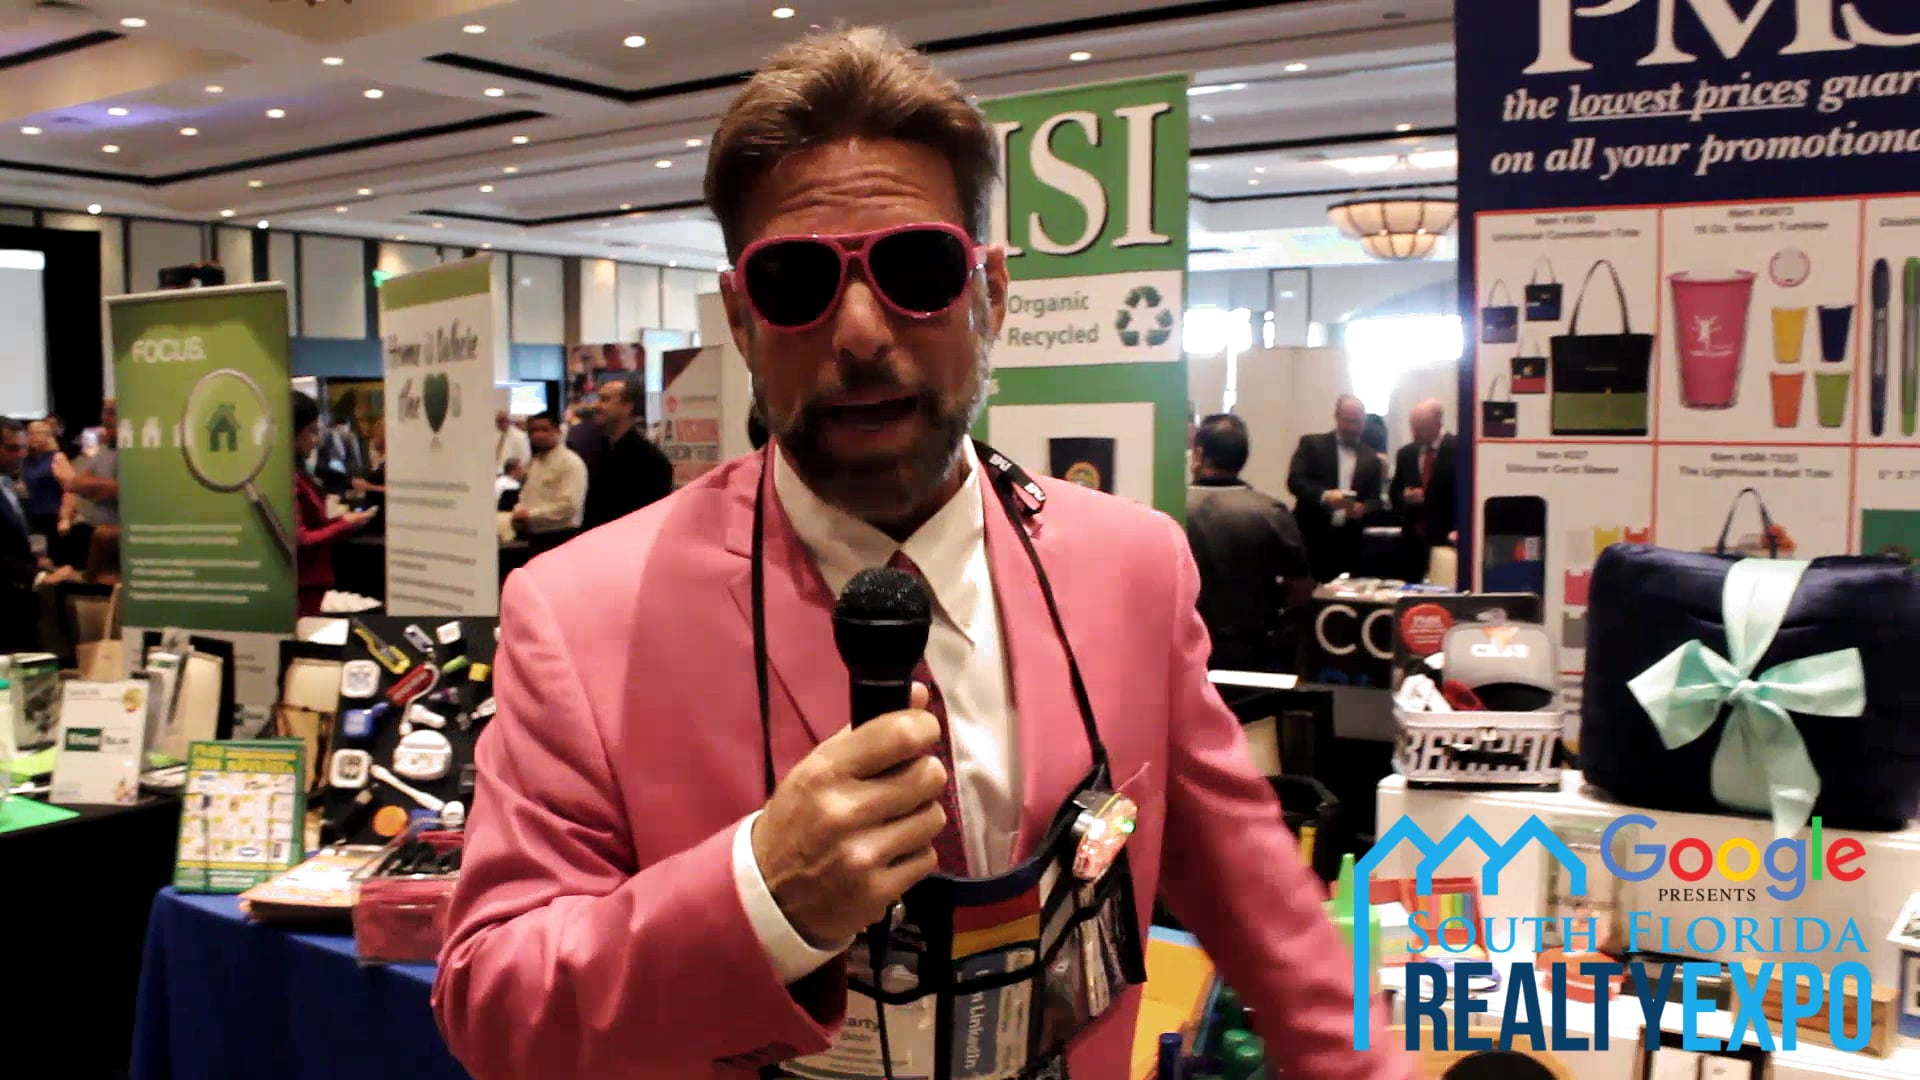 South Florida Realty Expo 2016 Event Video